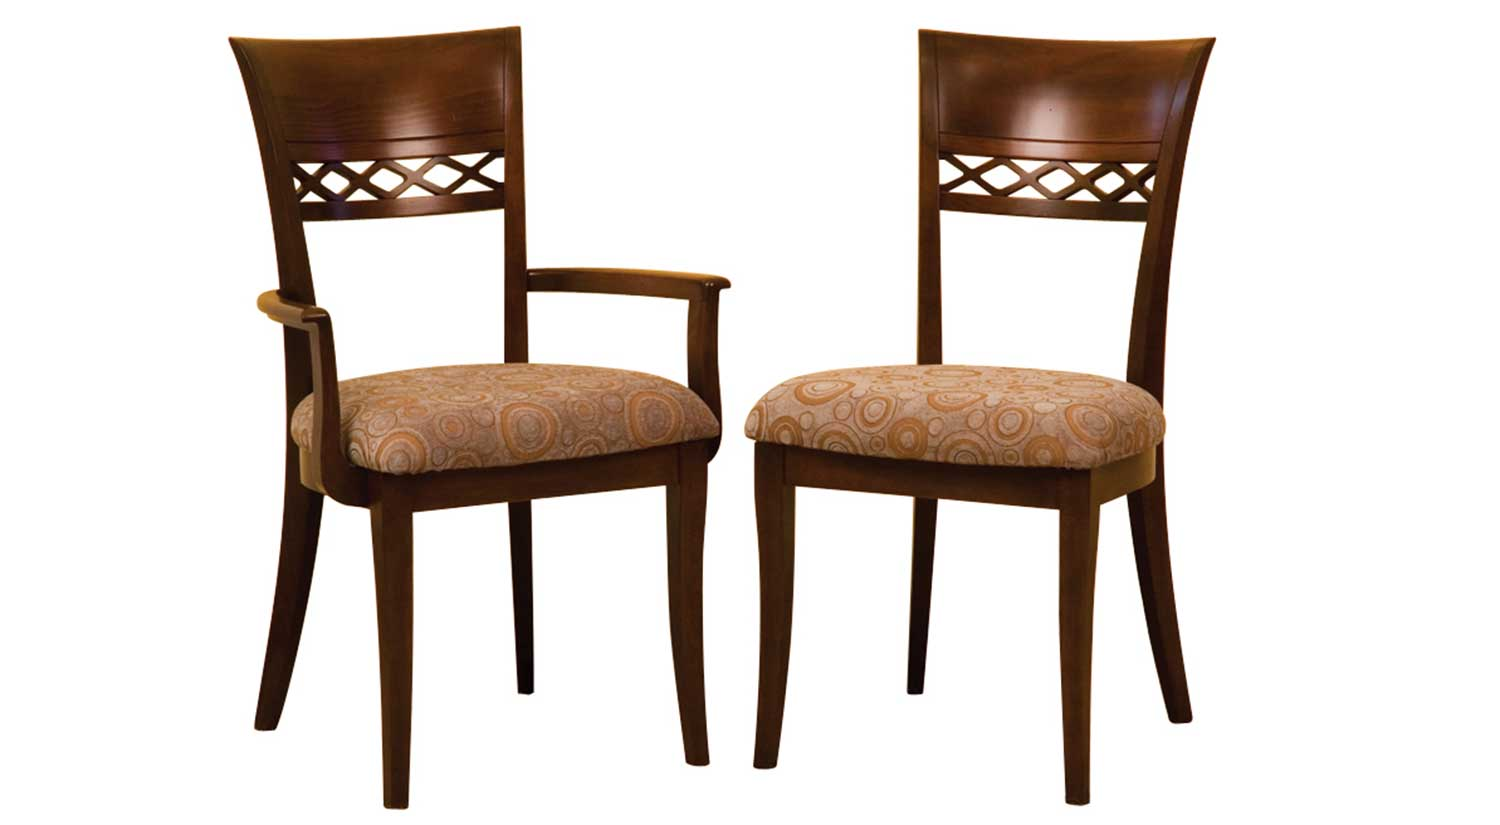 circle furniture chairs chicco 360 hook on chair jude dining acton